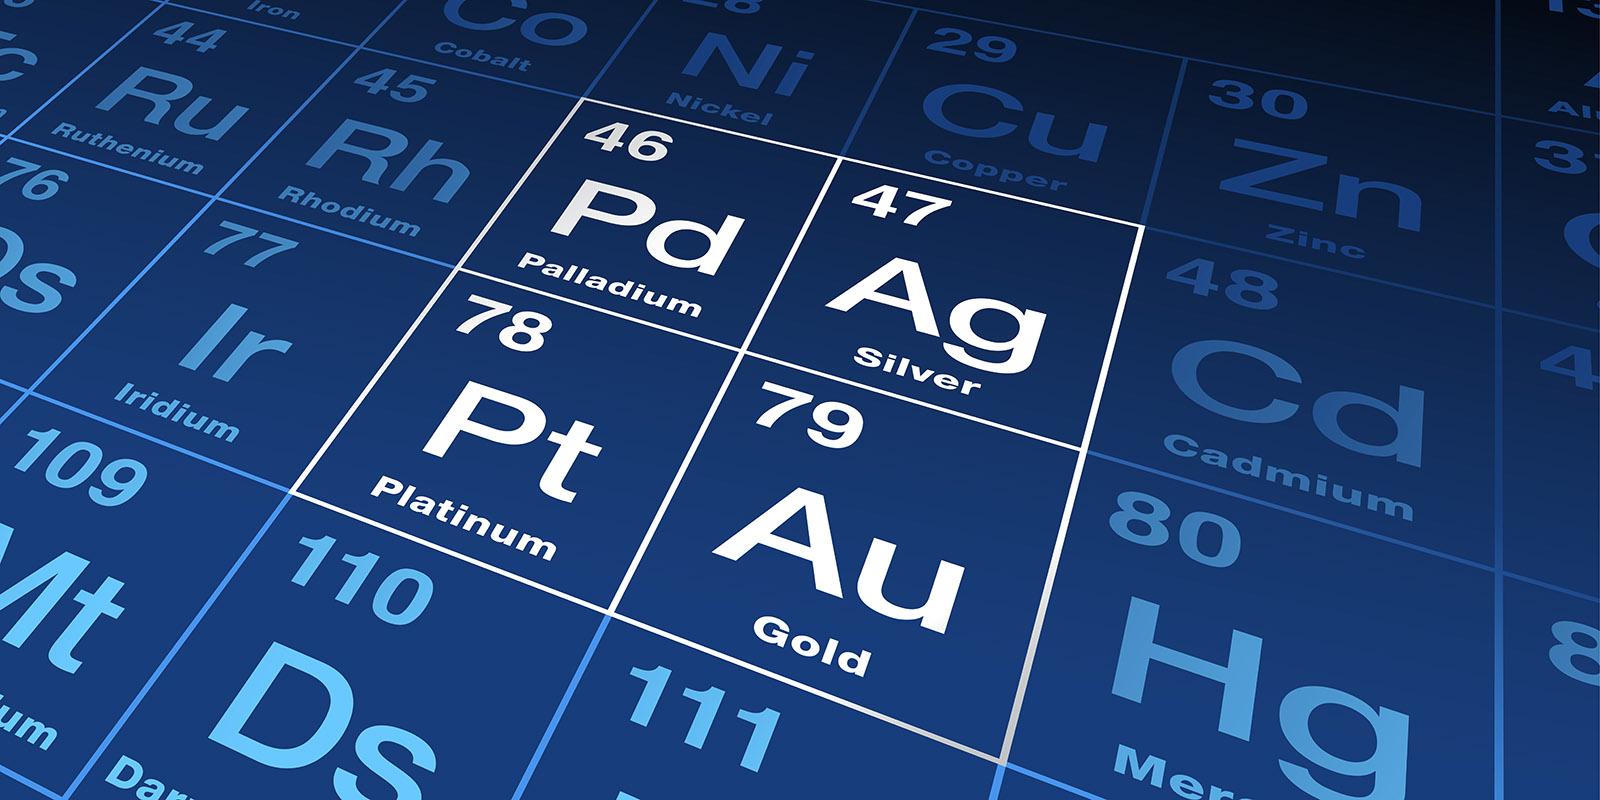 Precious metals on periodic table